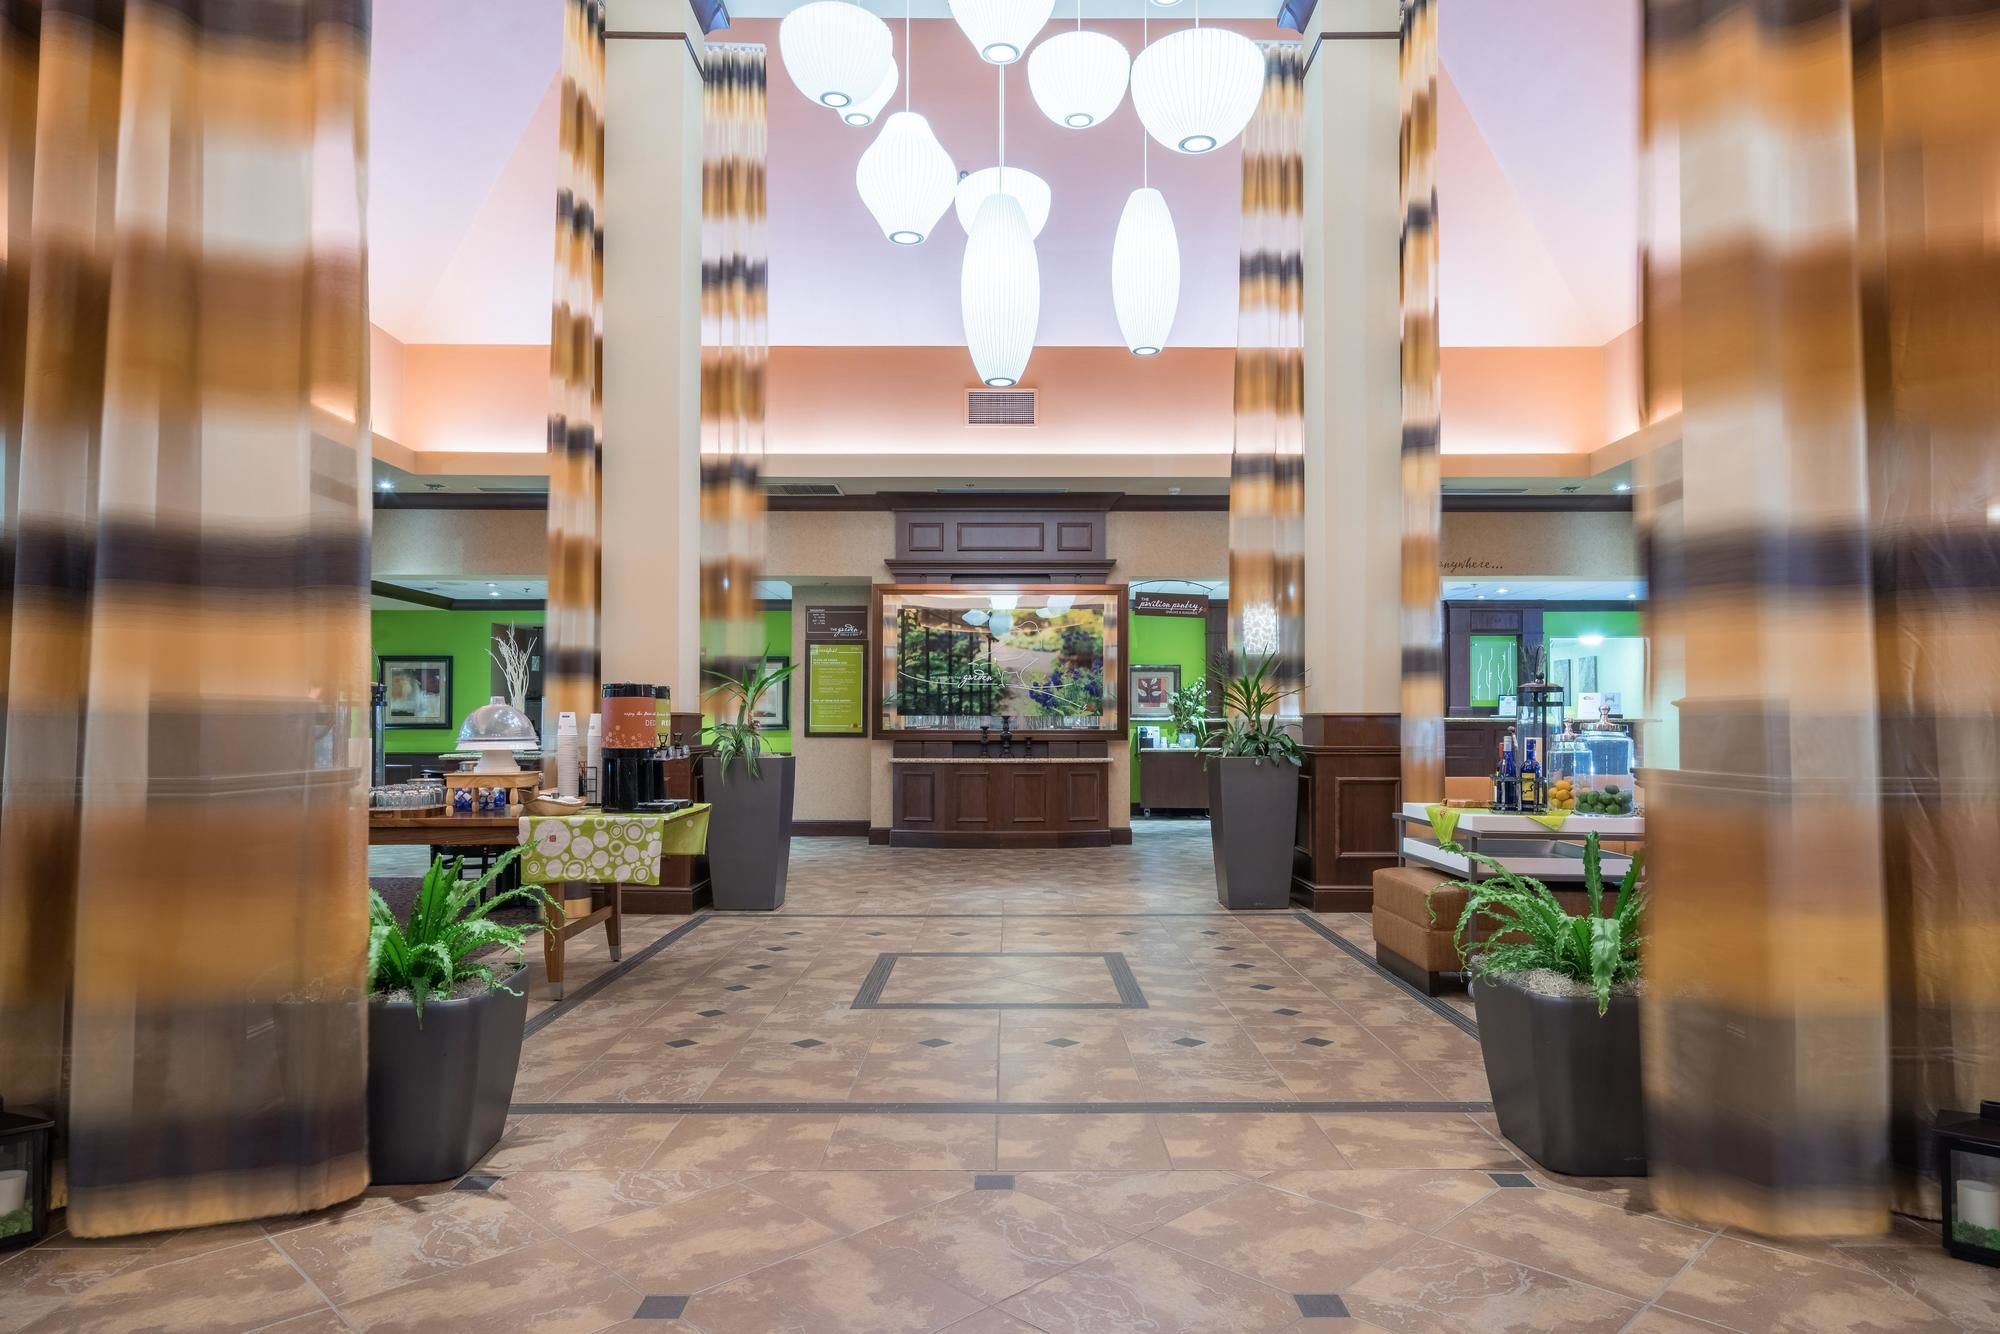 Sioux city hotel coupons for sioux city iowa for Hilton garden inn sioux city riverfront